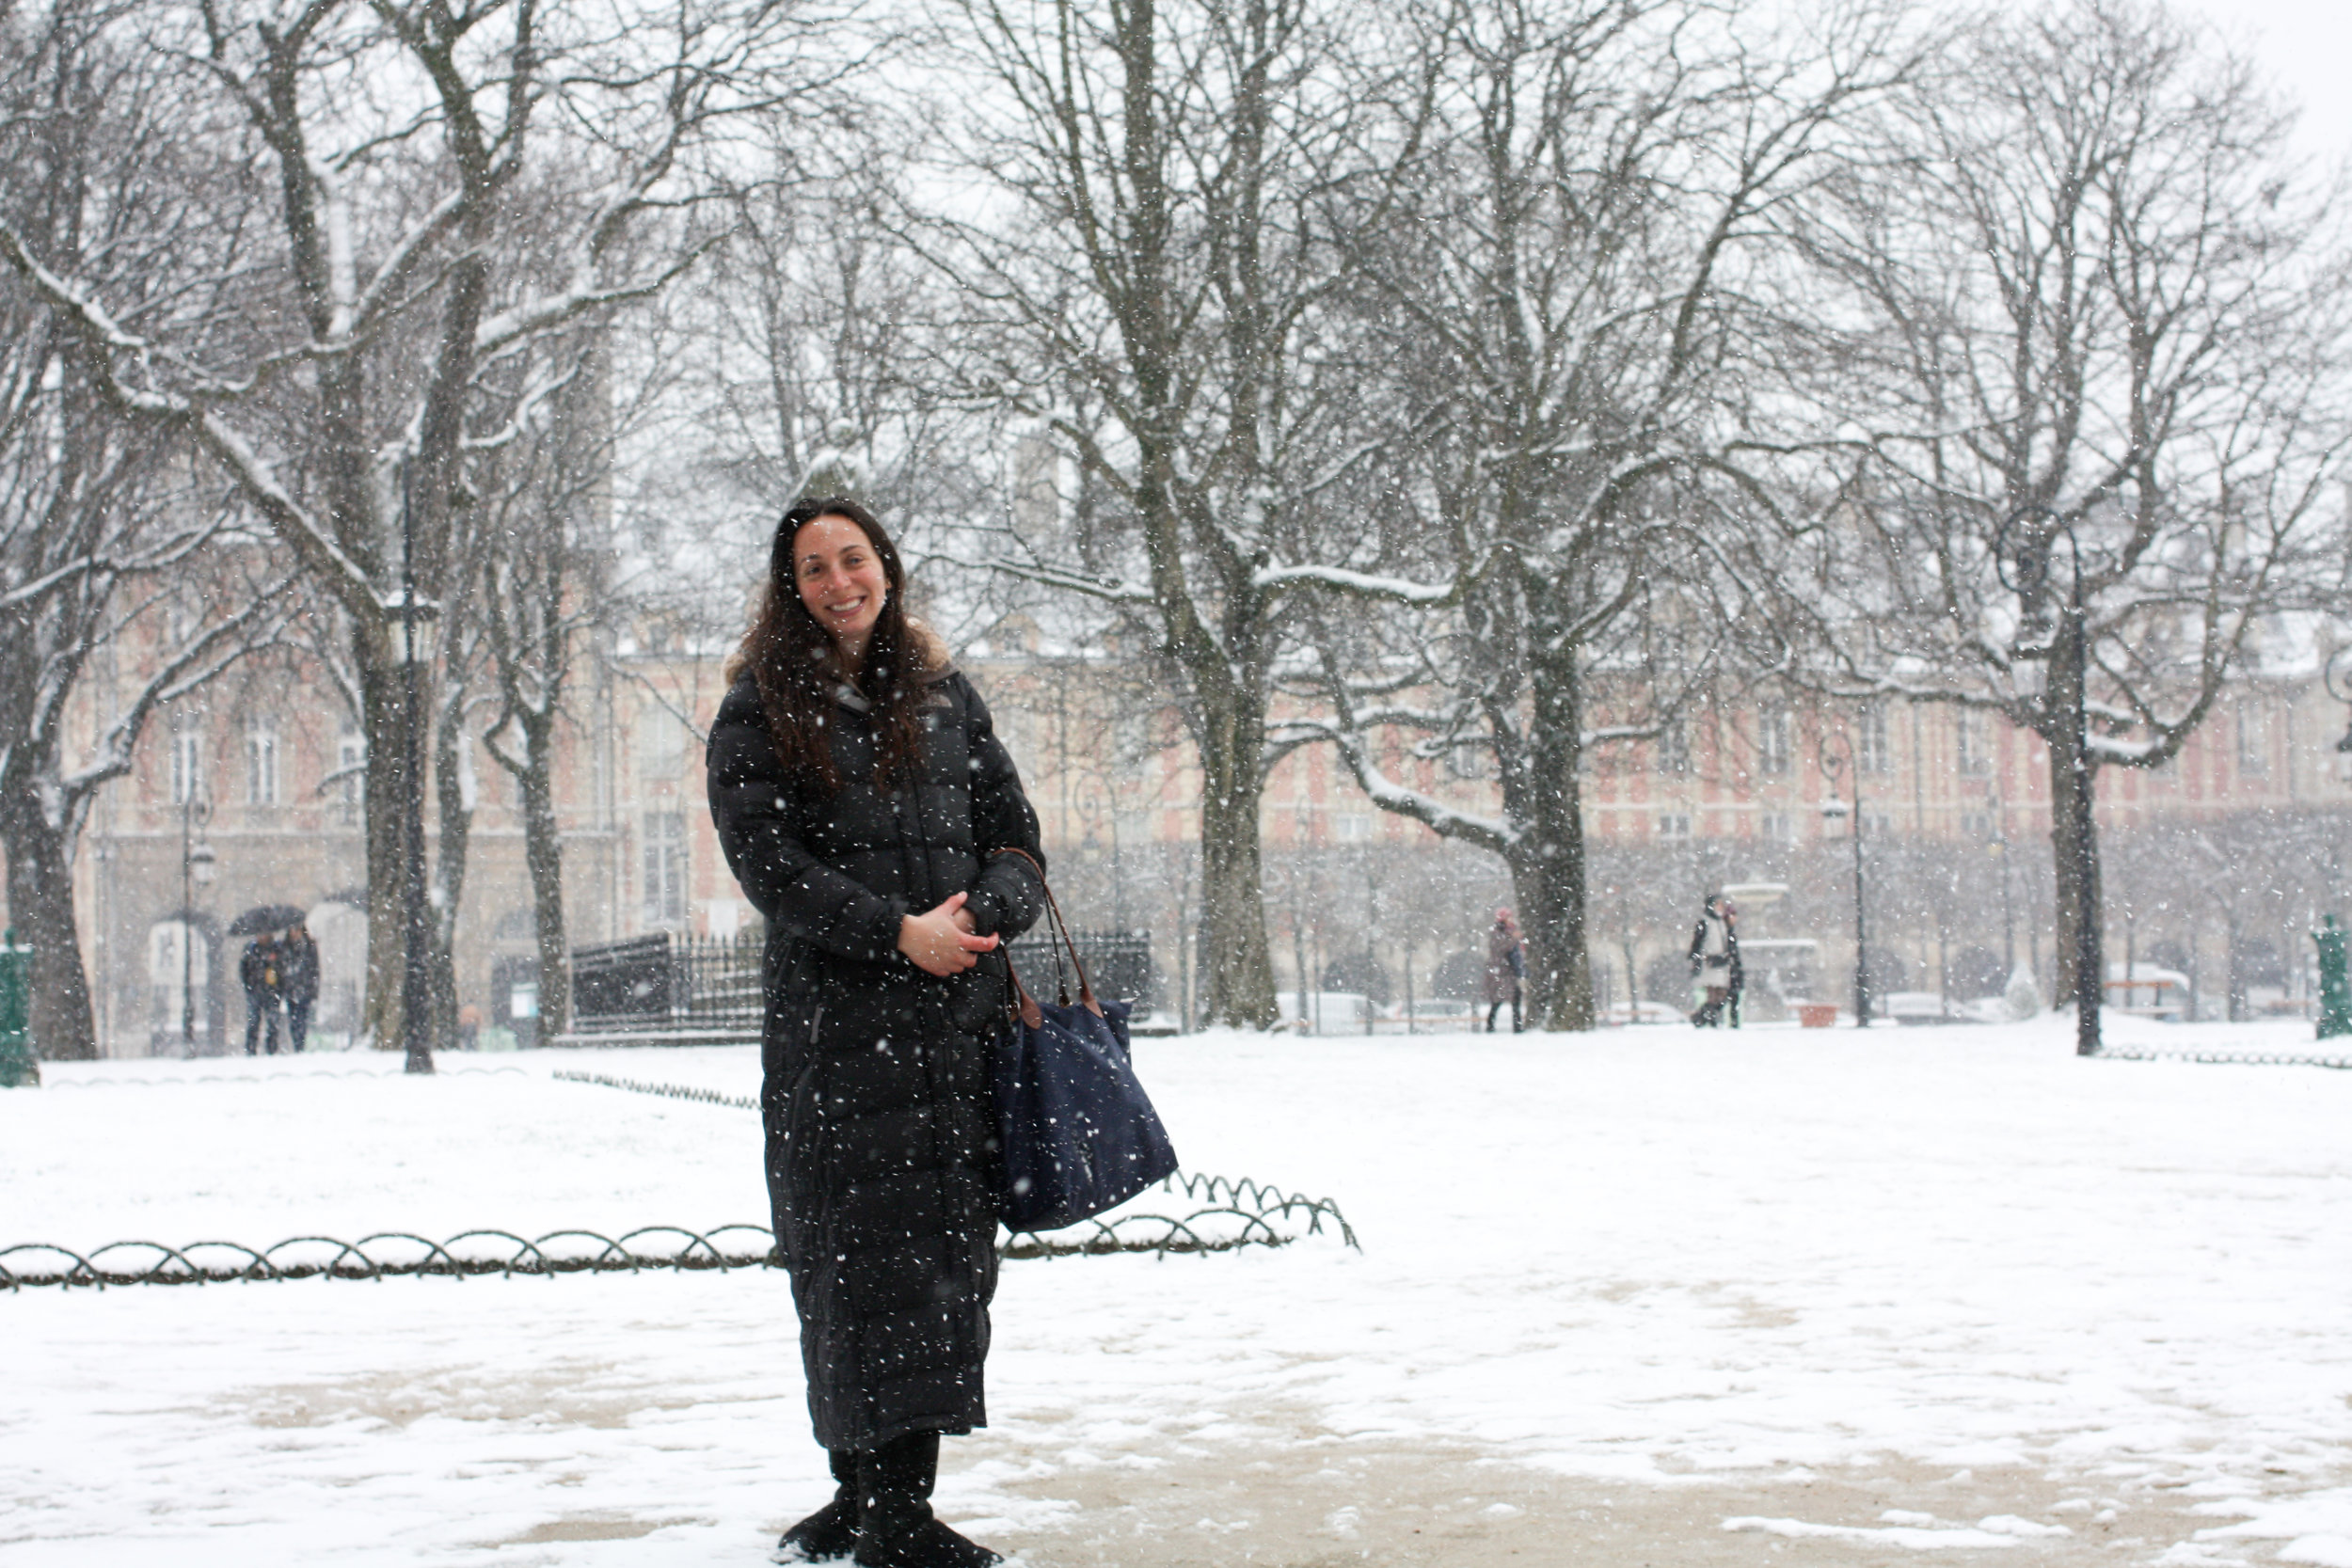 a look at paris in the snow by rebecca plotnick